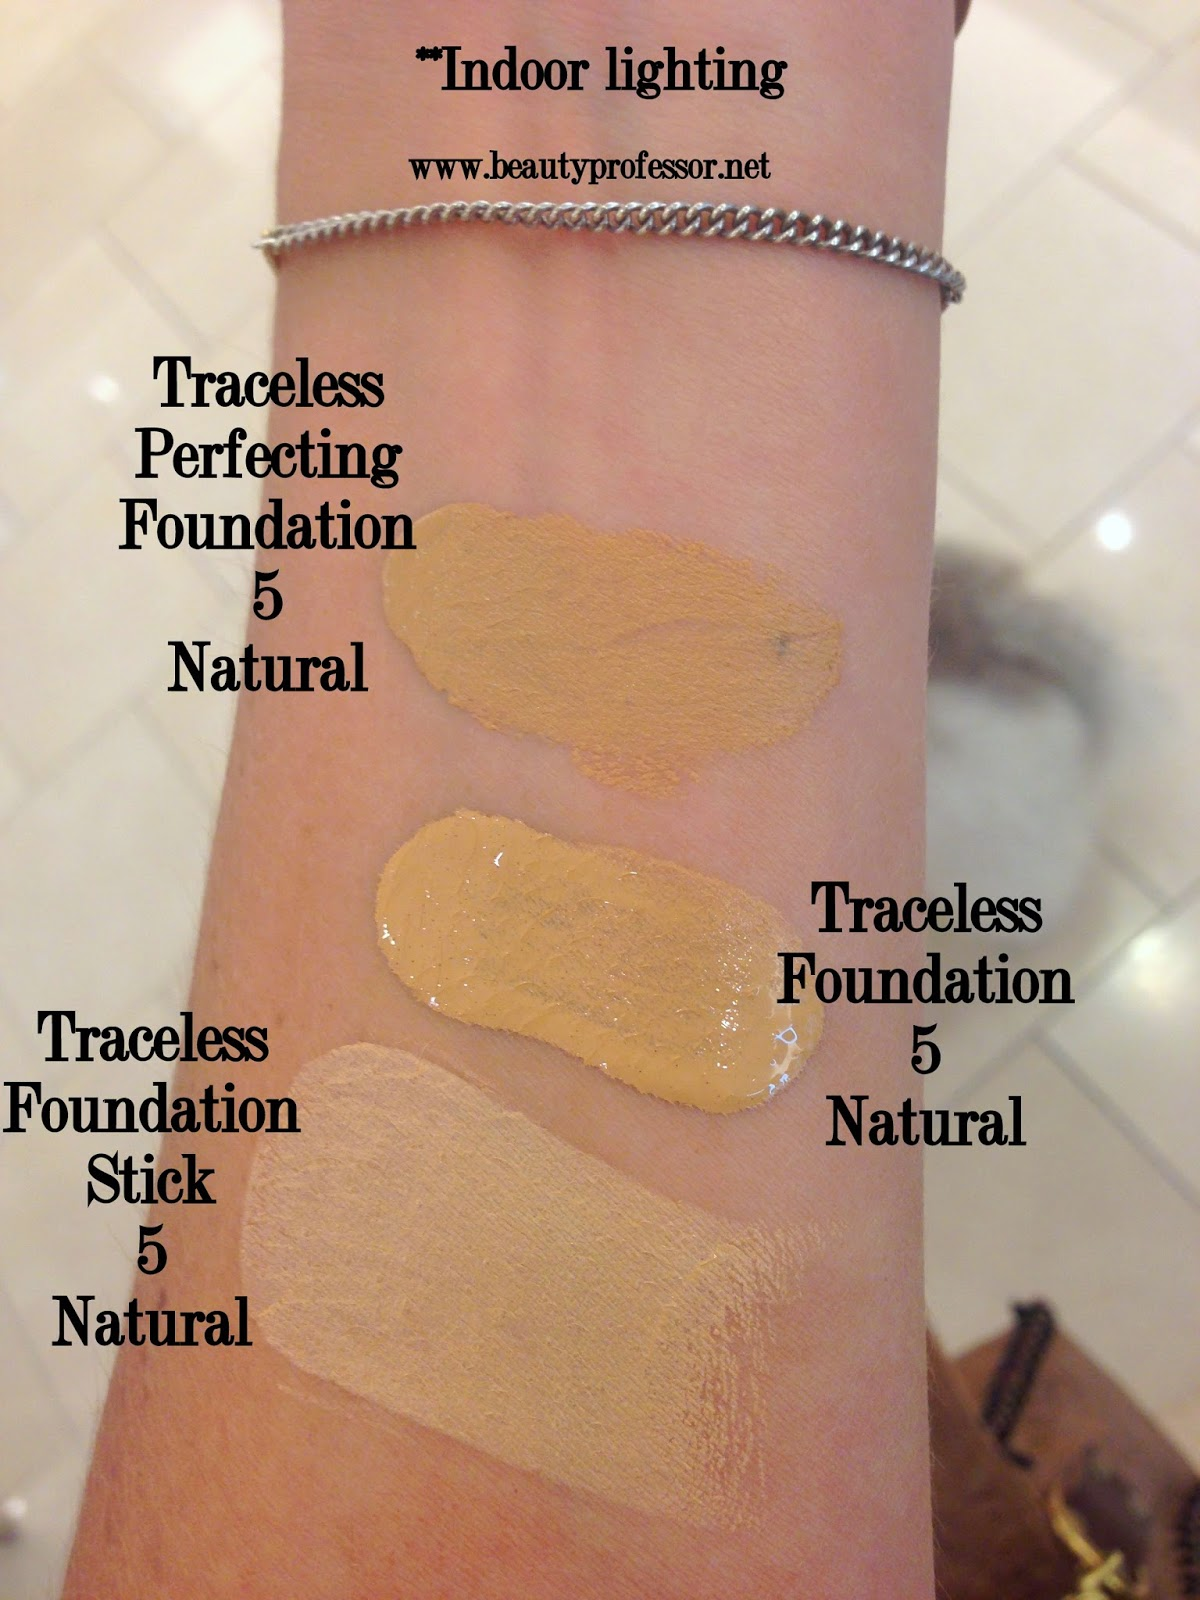 Tom Ford traceless perfecting foundation swatches